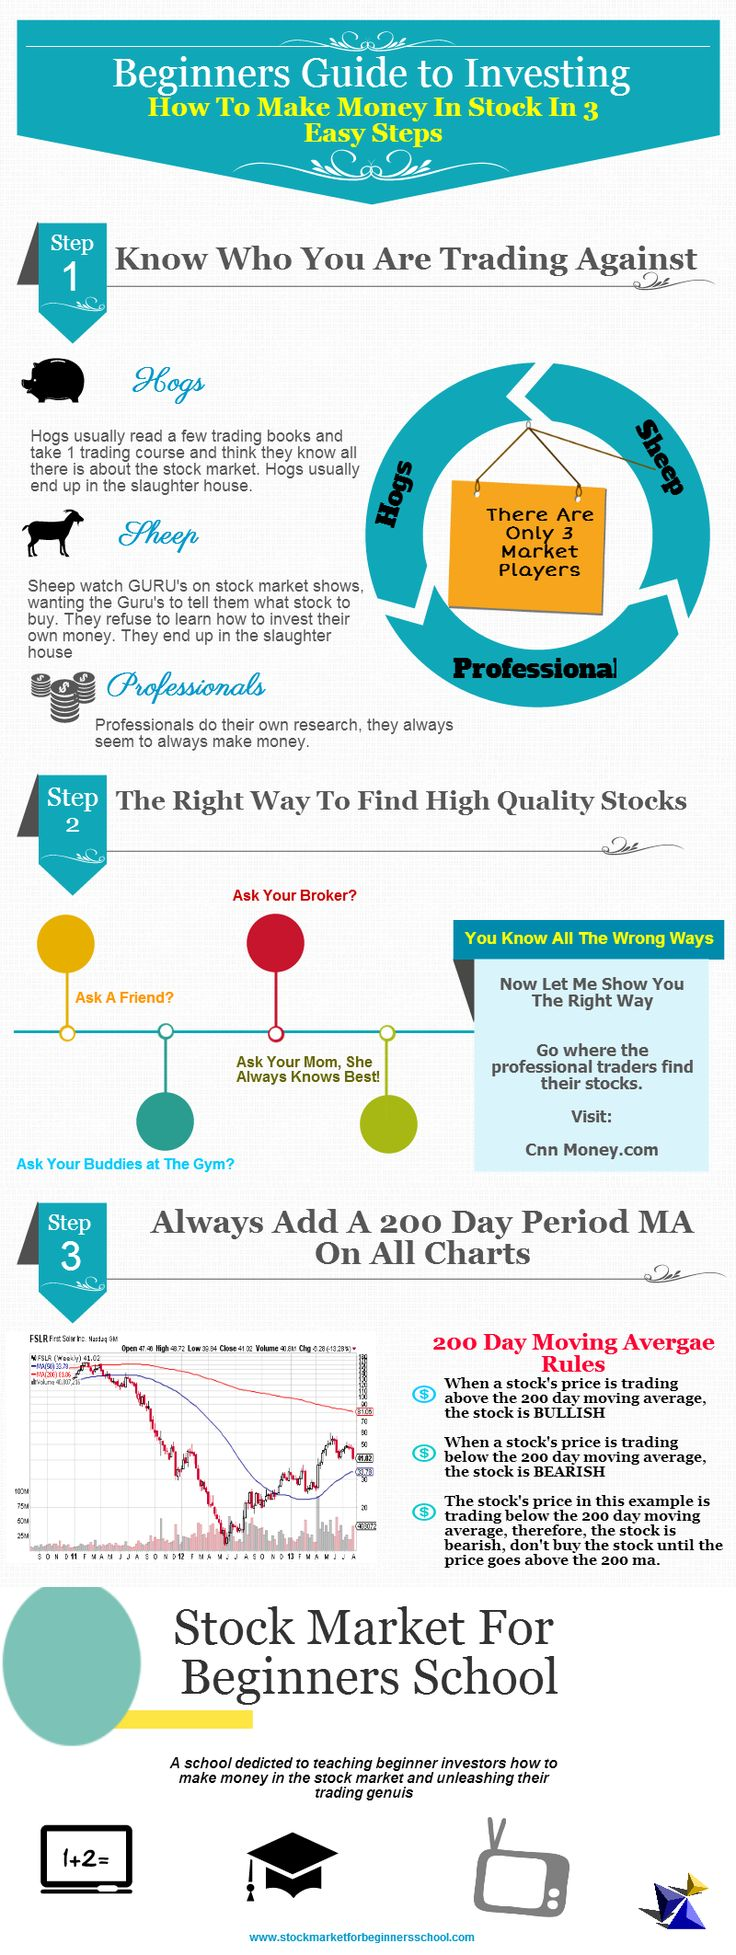 Beginners Guide To Investing: How To Make Money In Stocks In 3 Easy Steps